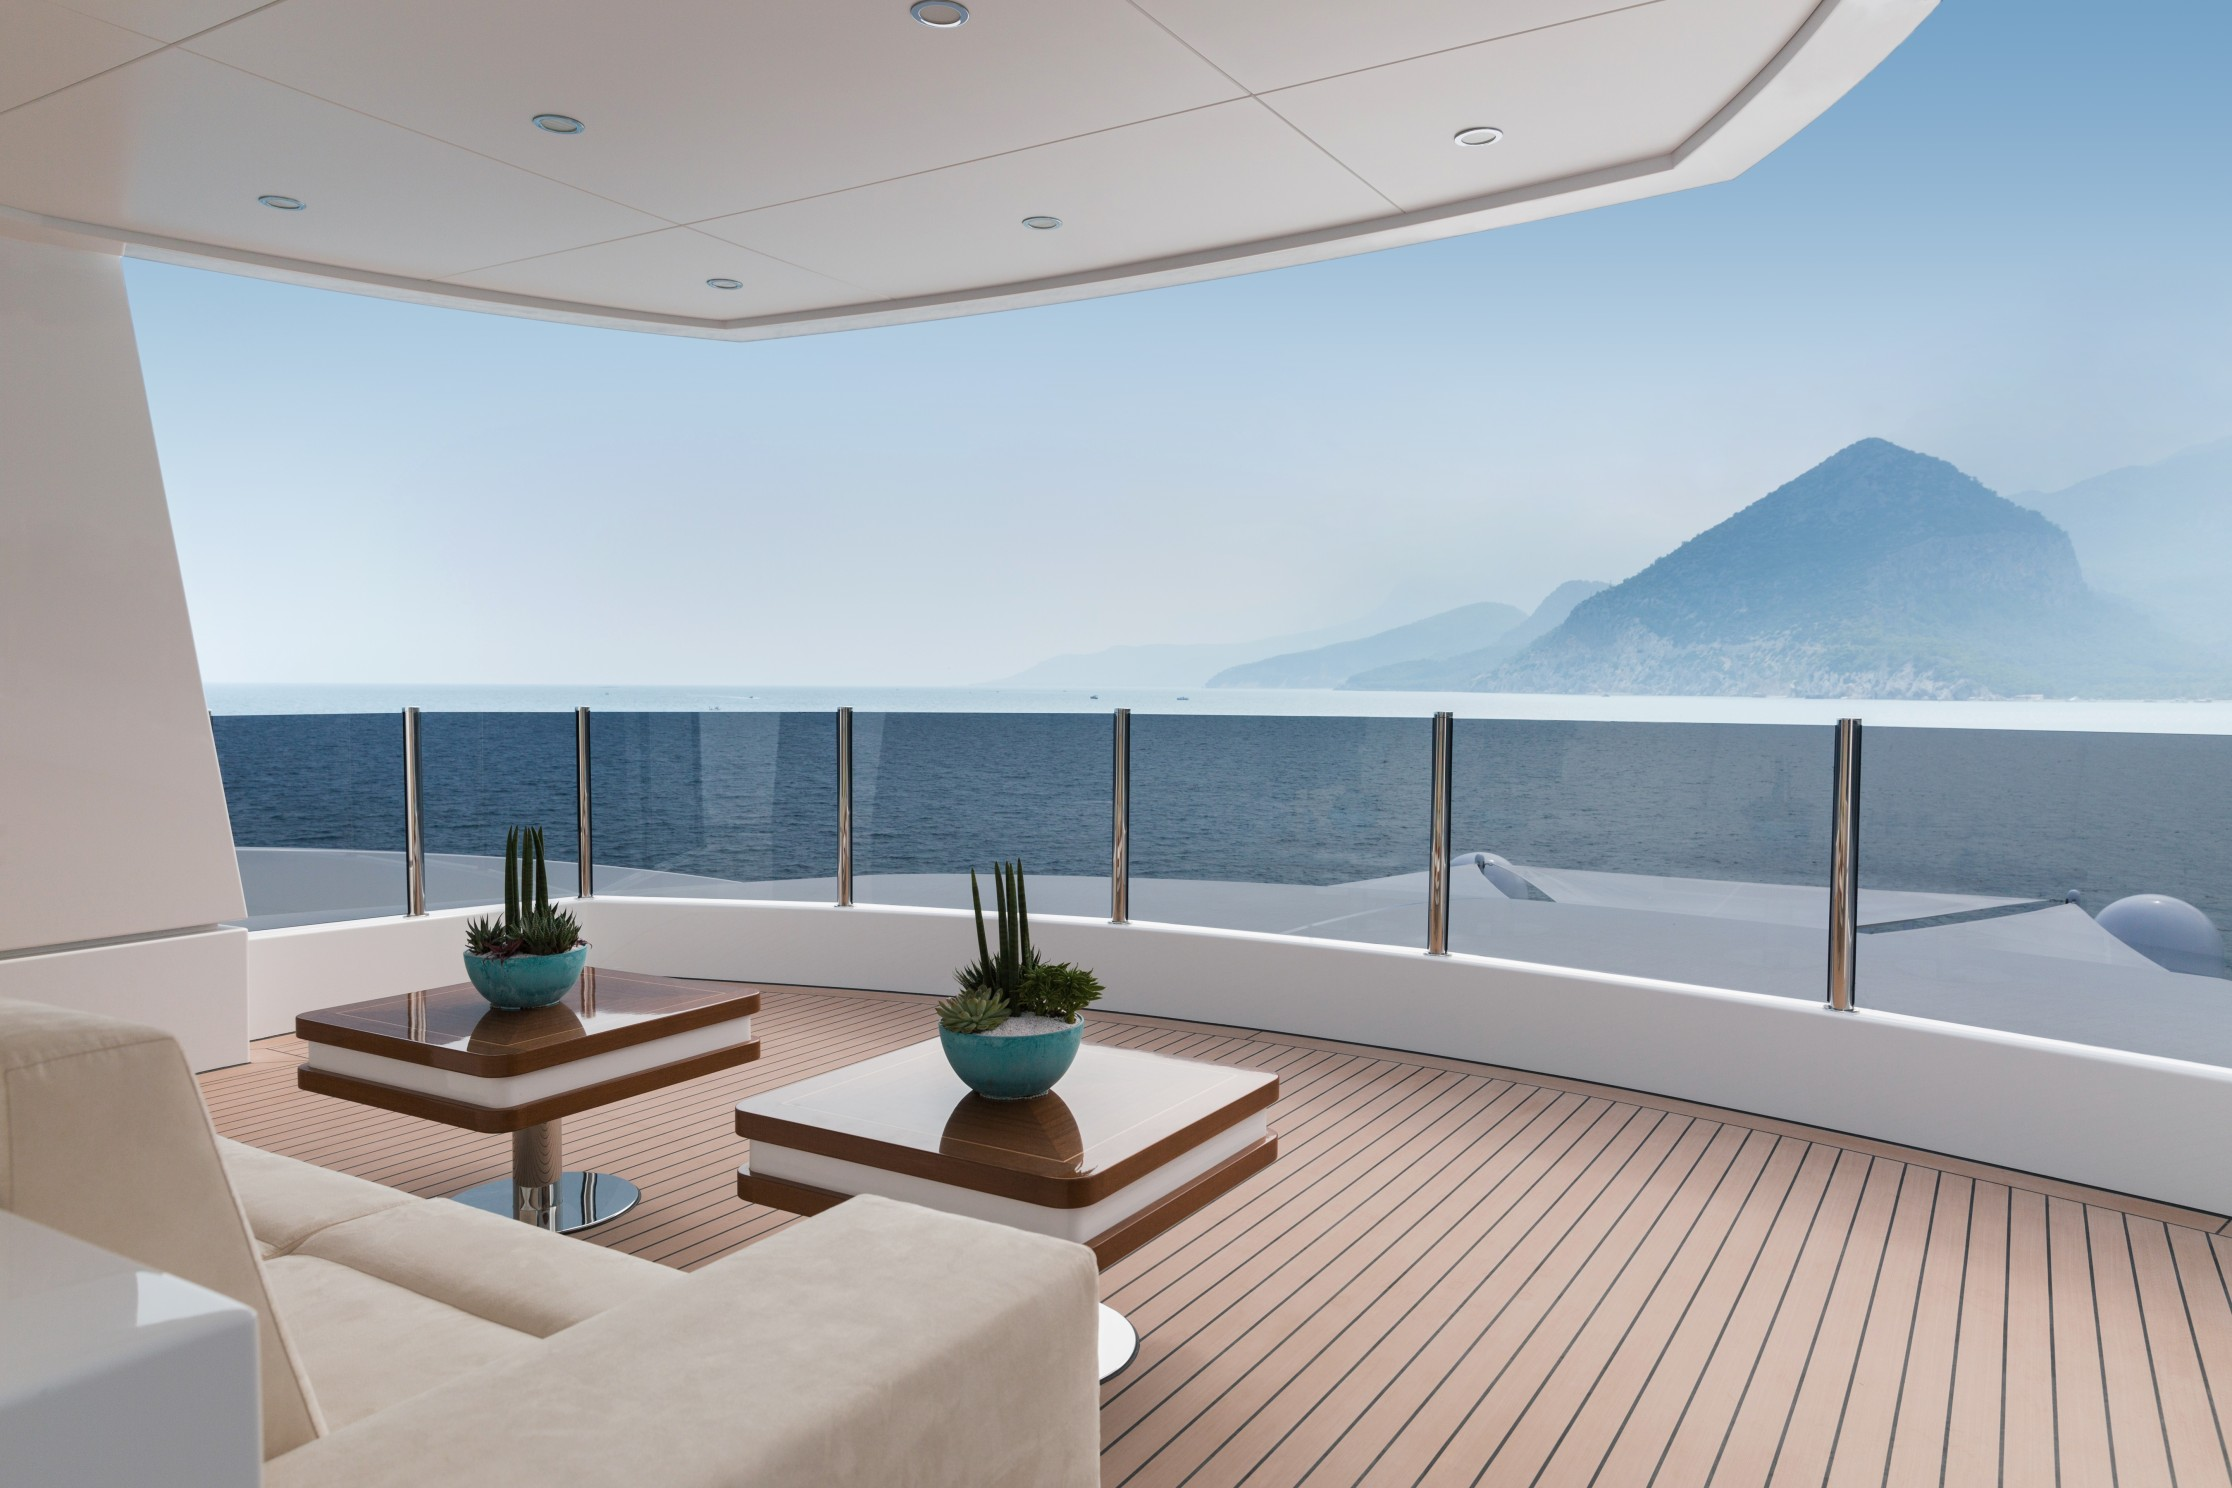 Luxury yacht decks